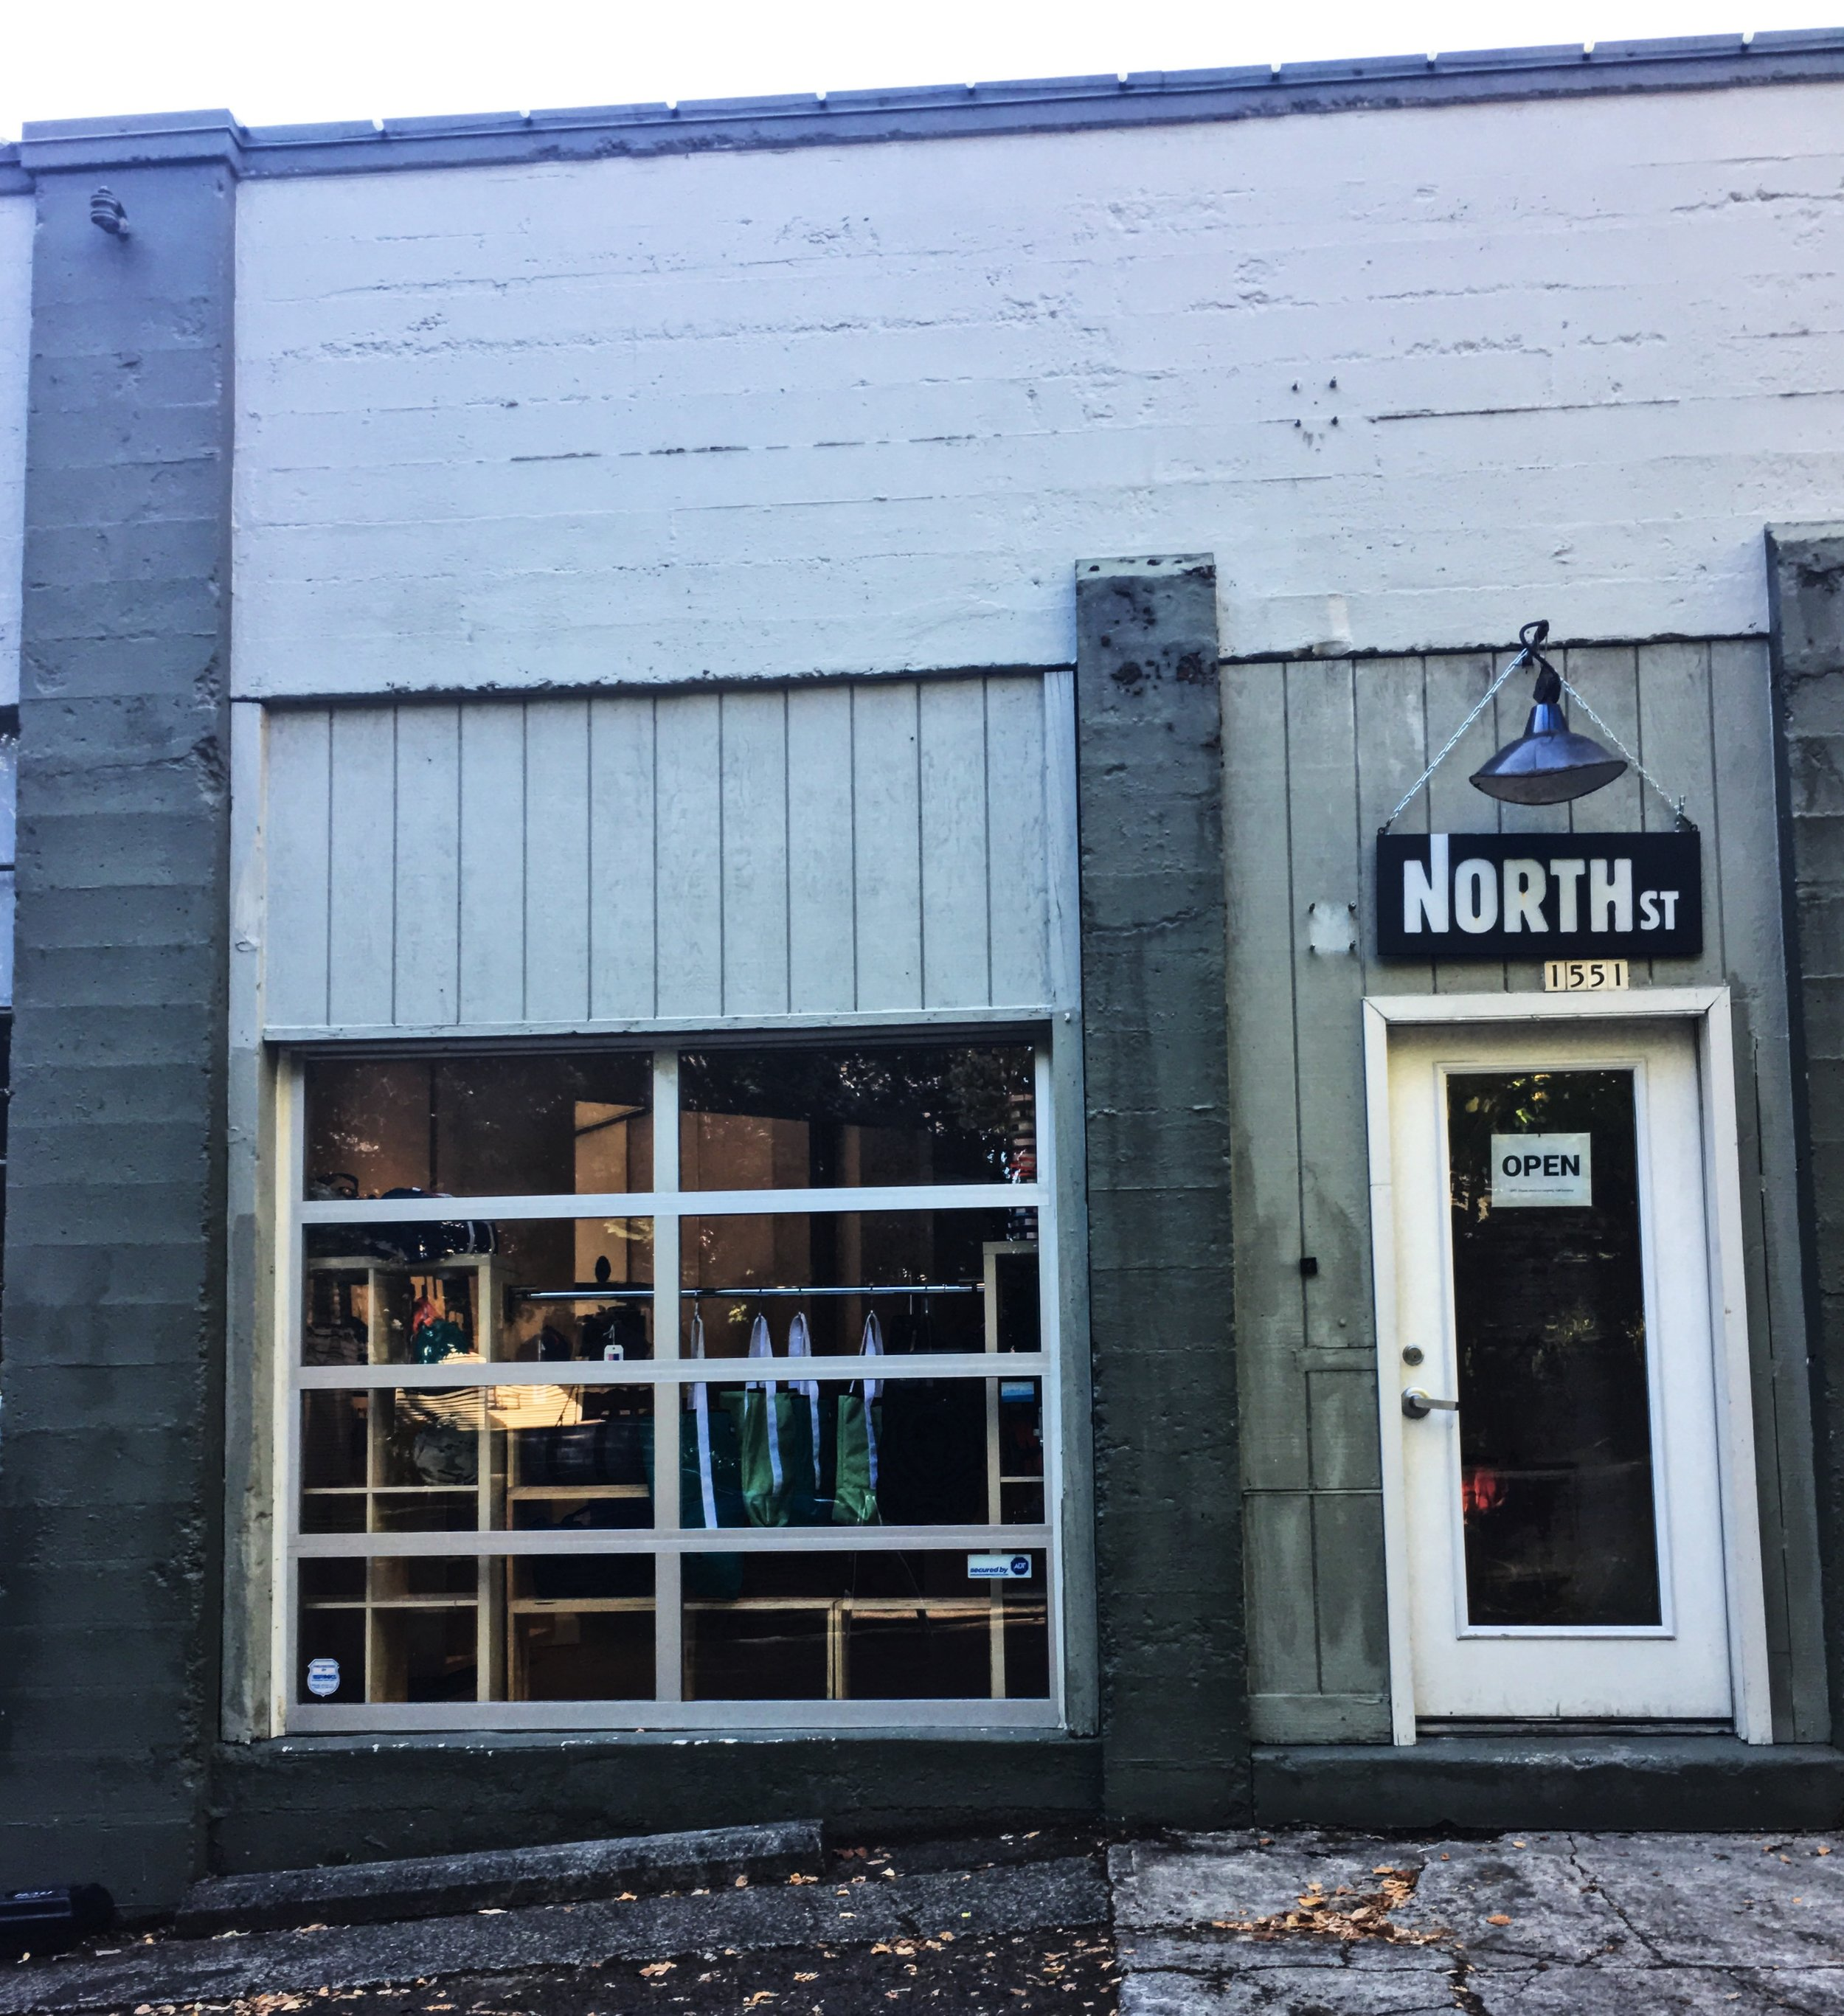 The entrance to North St.'s show room and work space.